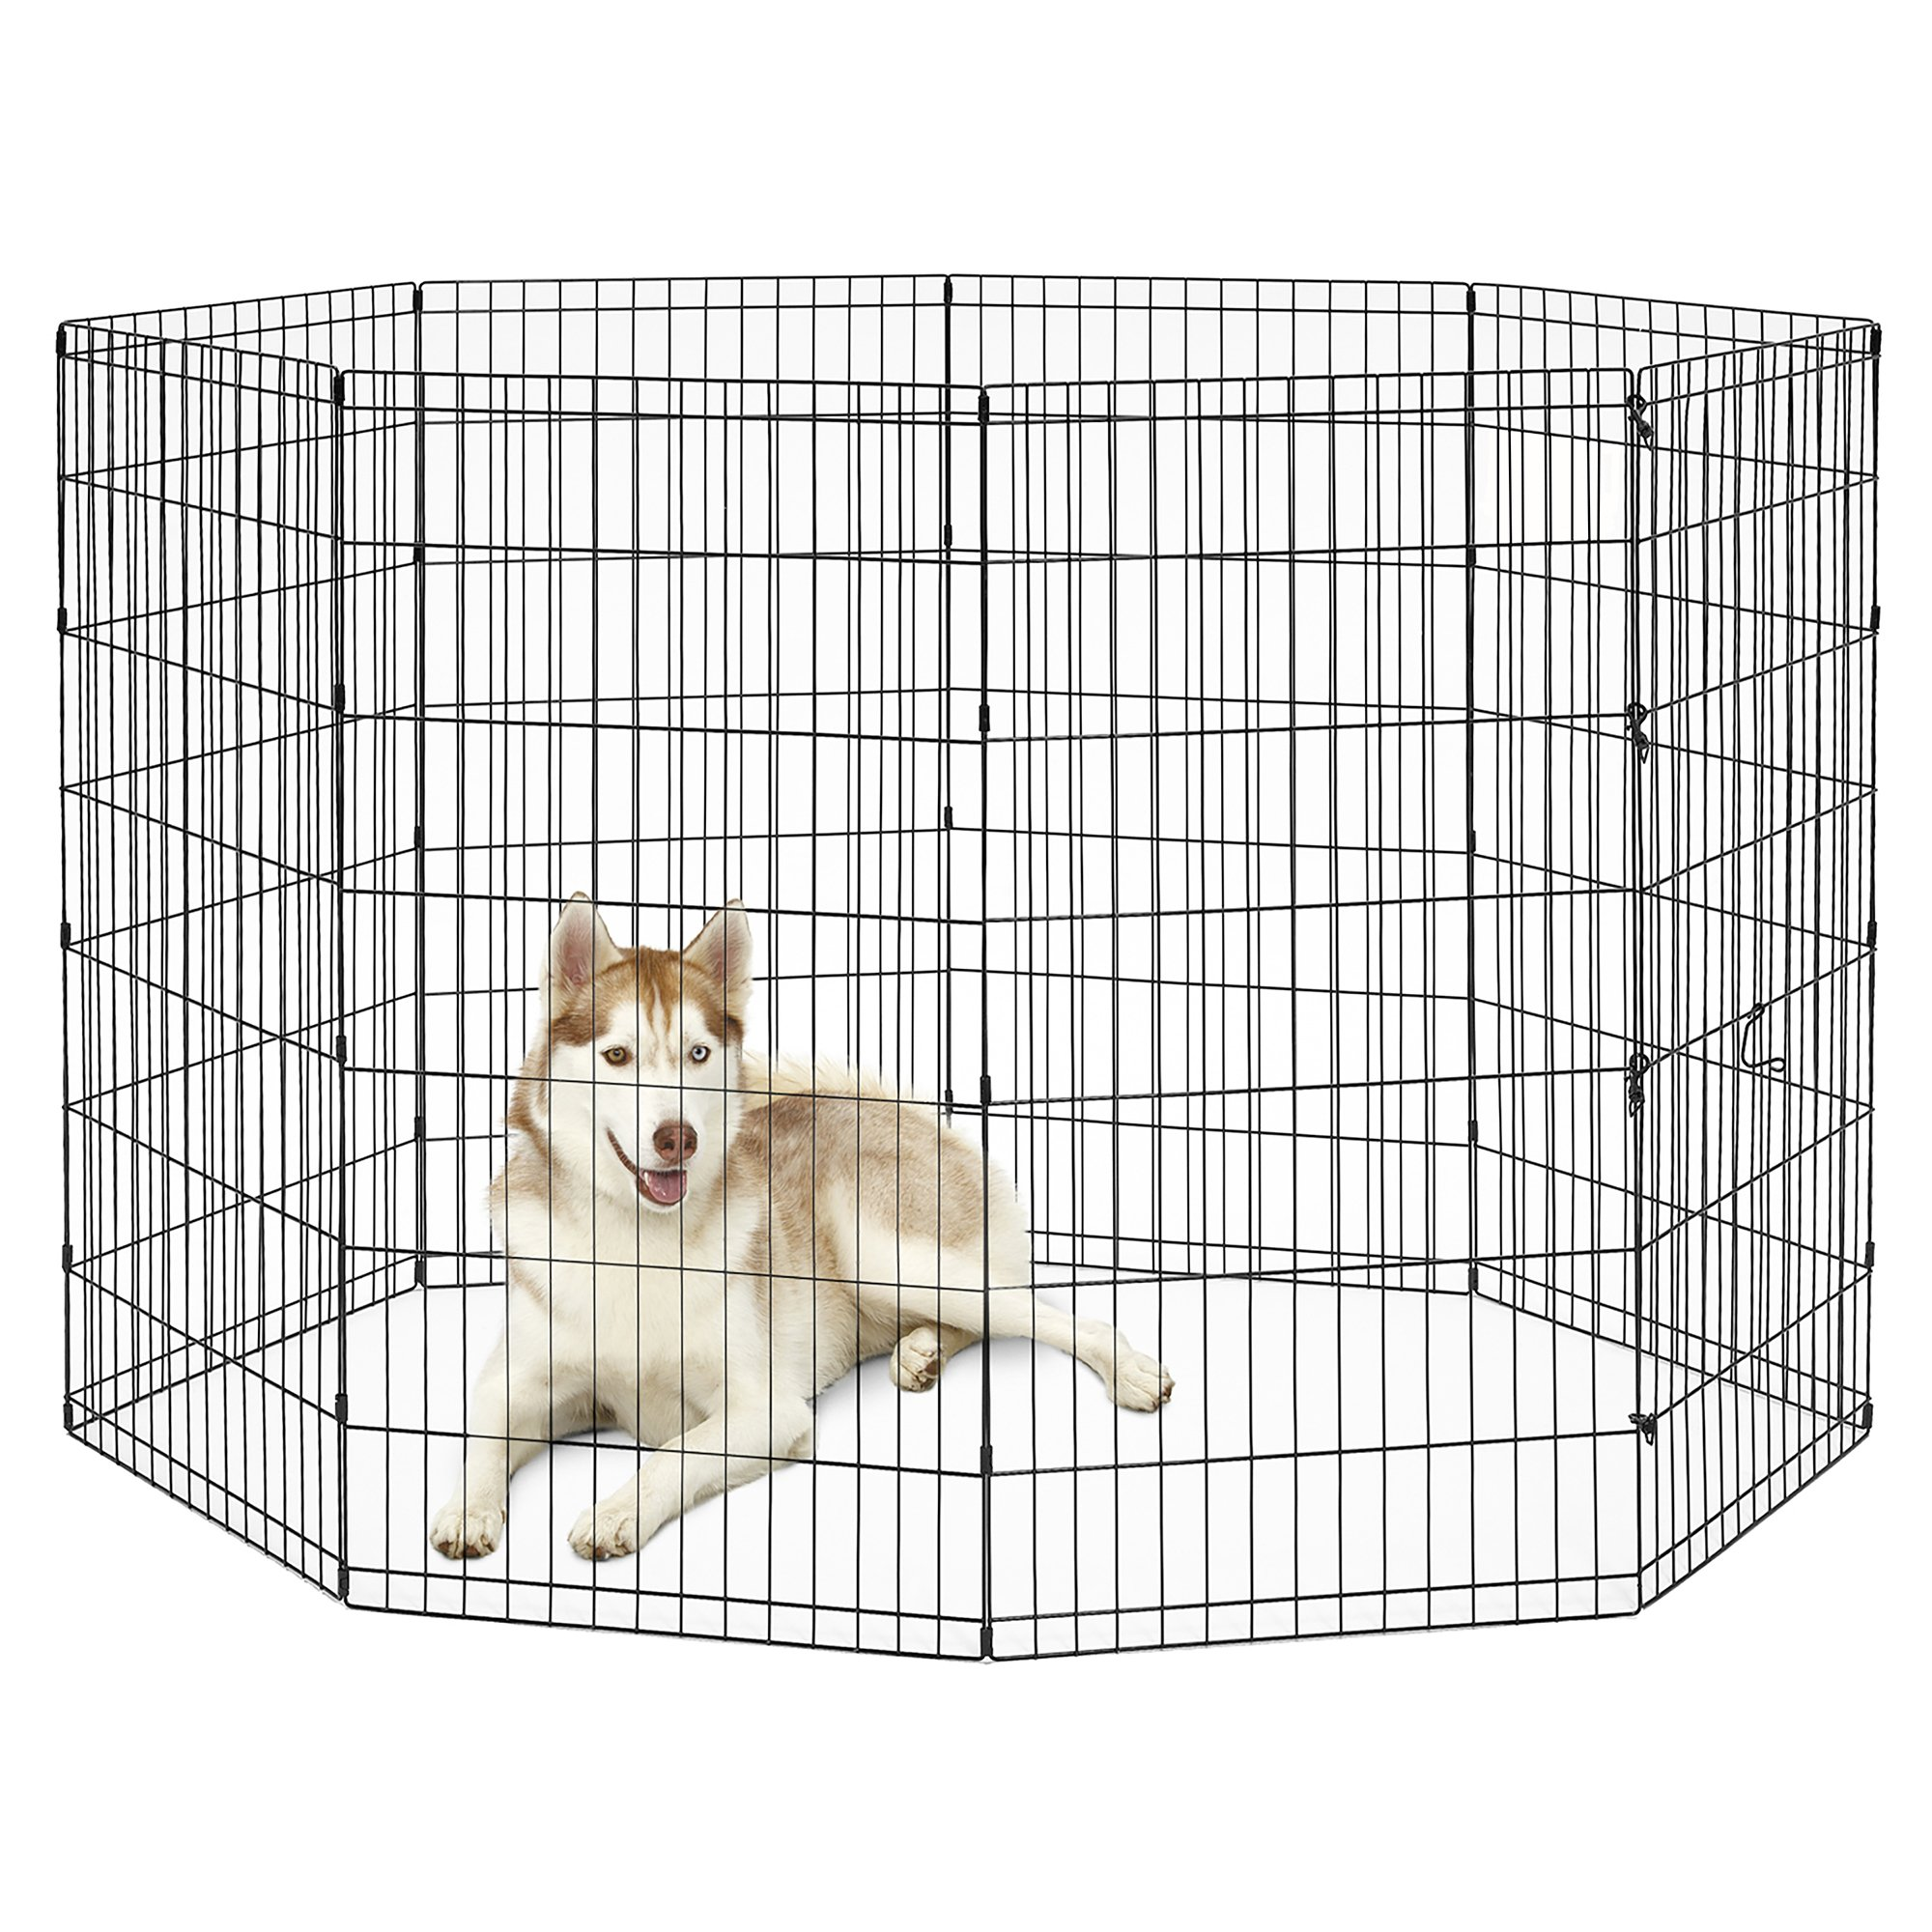 New World Pet Products B558-48 Foldable Exercise Pet Playpen, Black, X-Large/24 x 48''